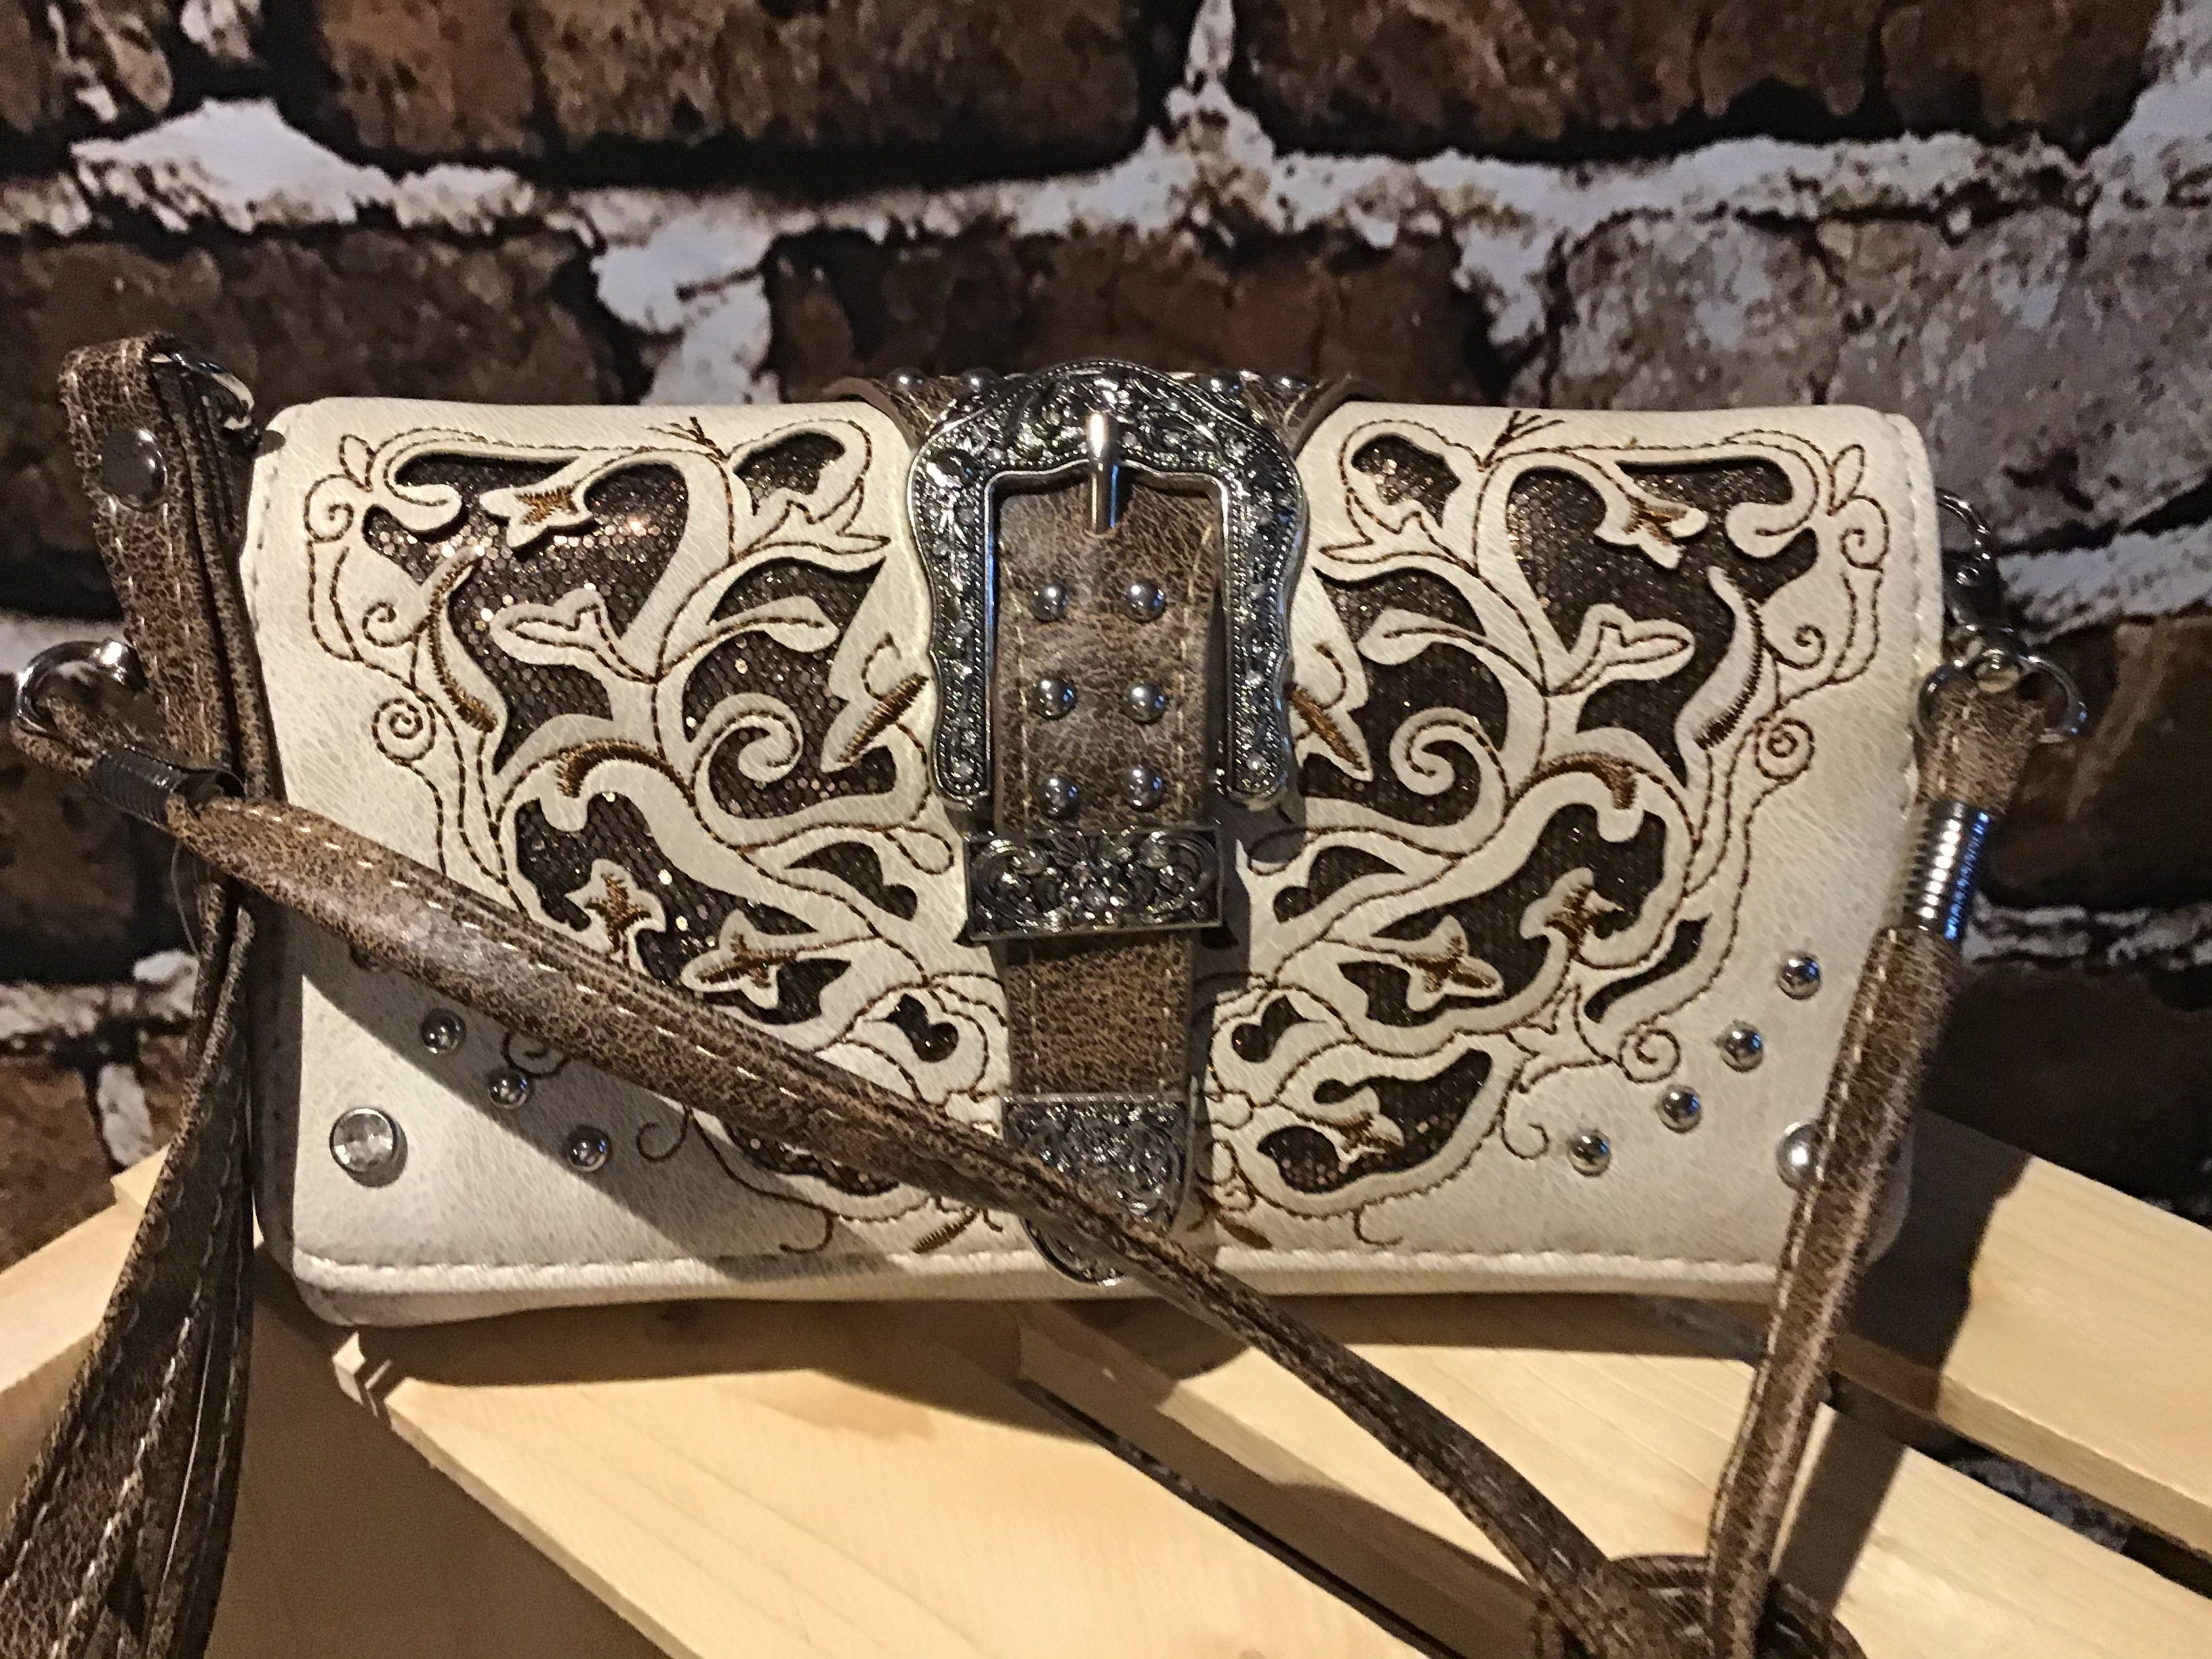 Multi Functional Western Buckle Trifold Clutch Crossbody Wallet Beige